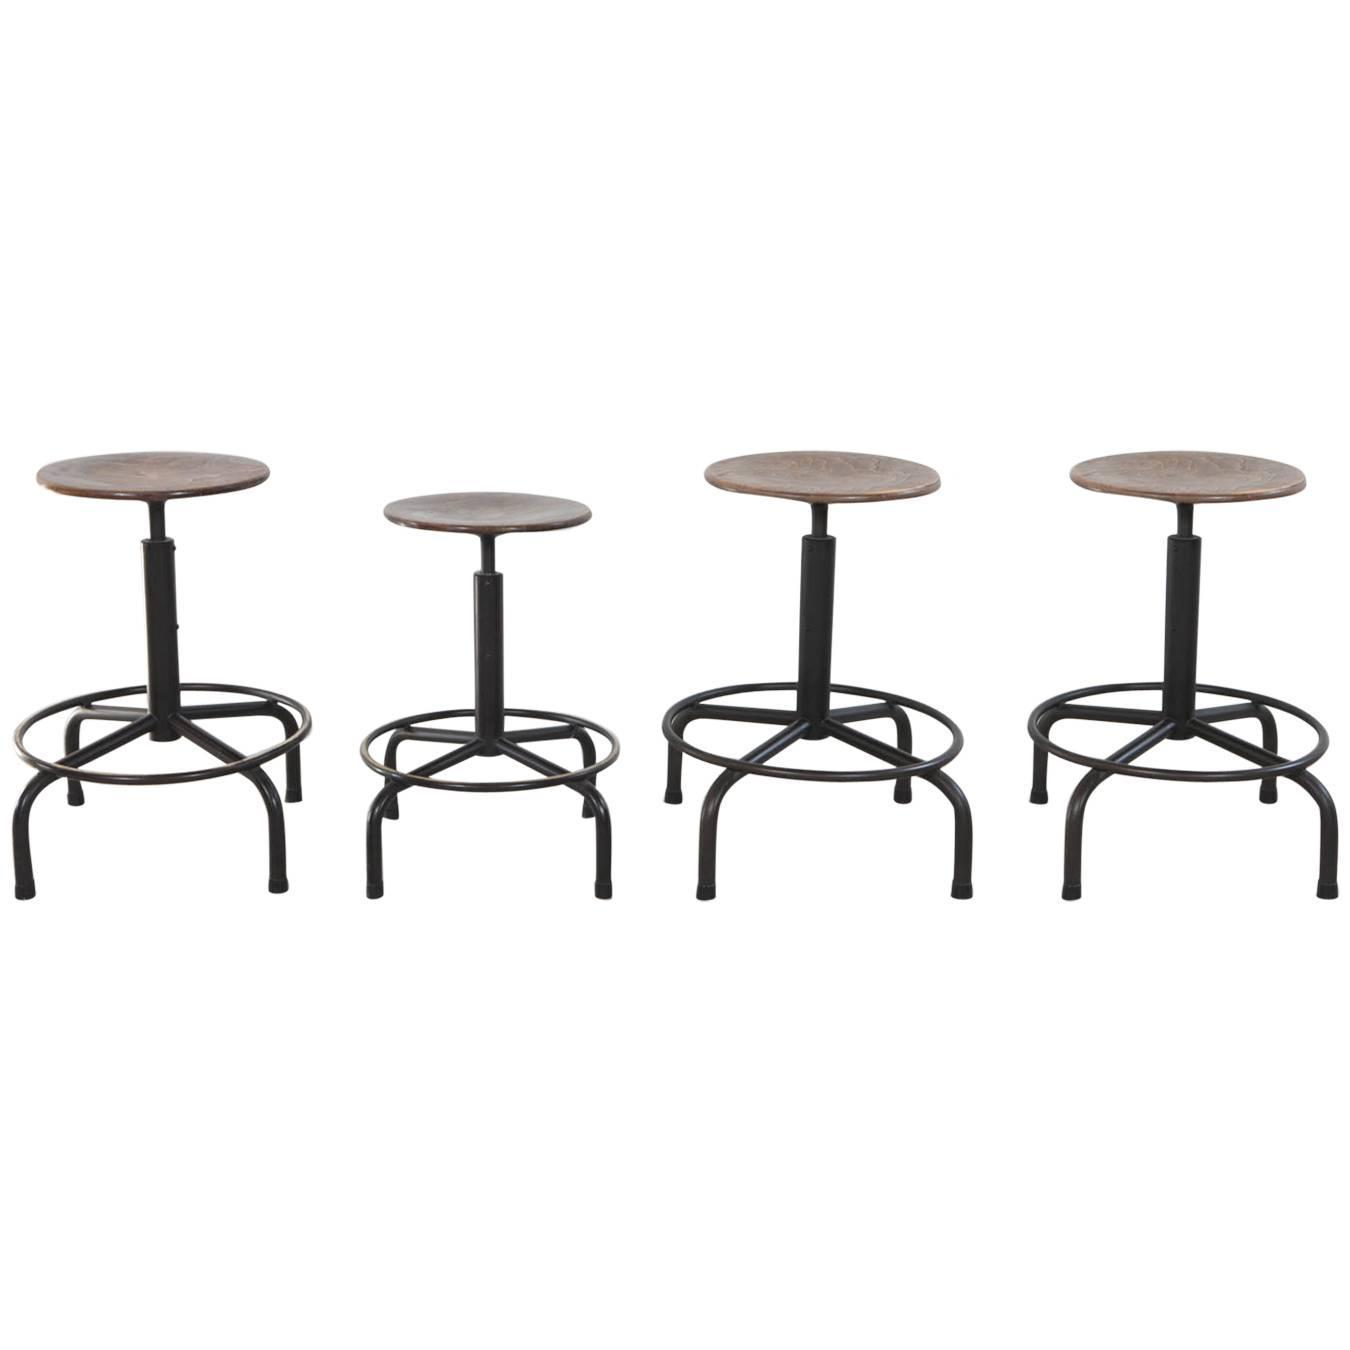 Metal and Wood Swivel Adjustable Height Counter Stool at 1stdibs